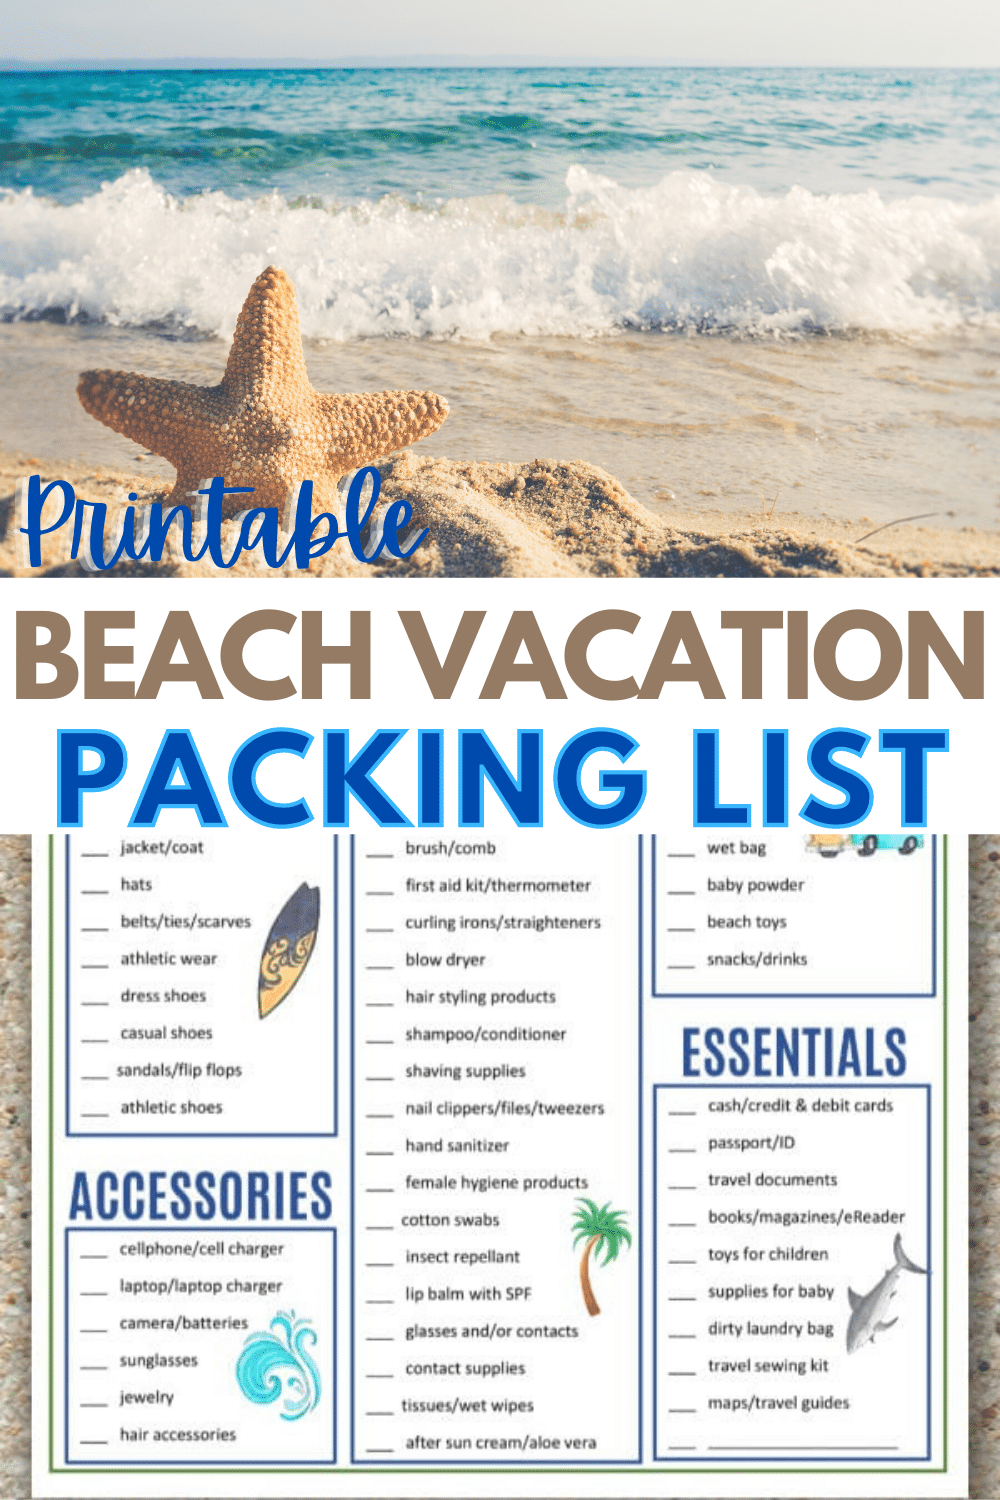 A beach packing list will help you stay organized for a beach vacation. This printable beach packing list covers what you may need for a day at the beach. #printables #vacation #packinglist via @wondermomwannab